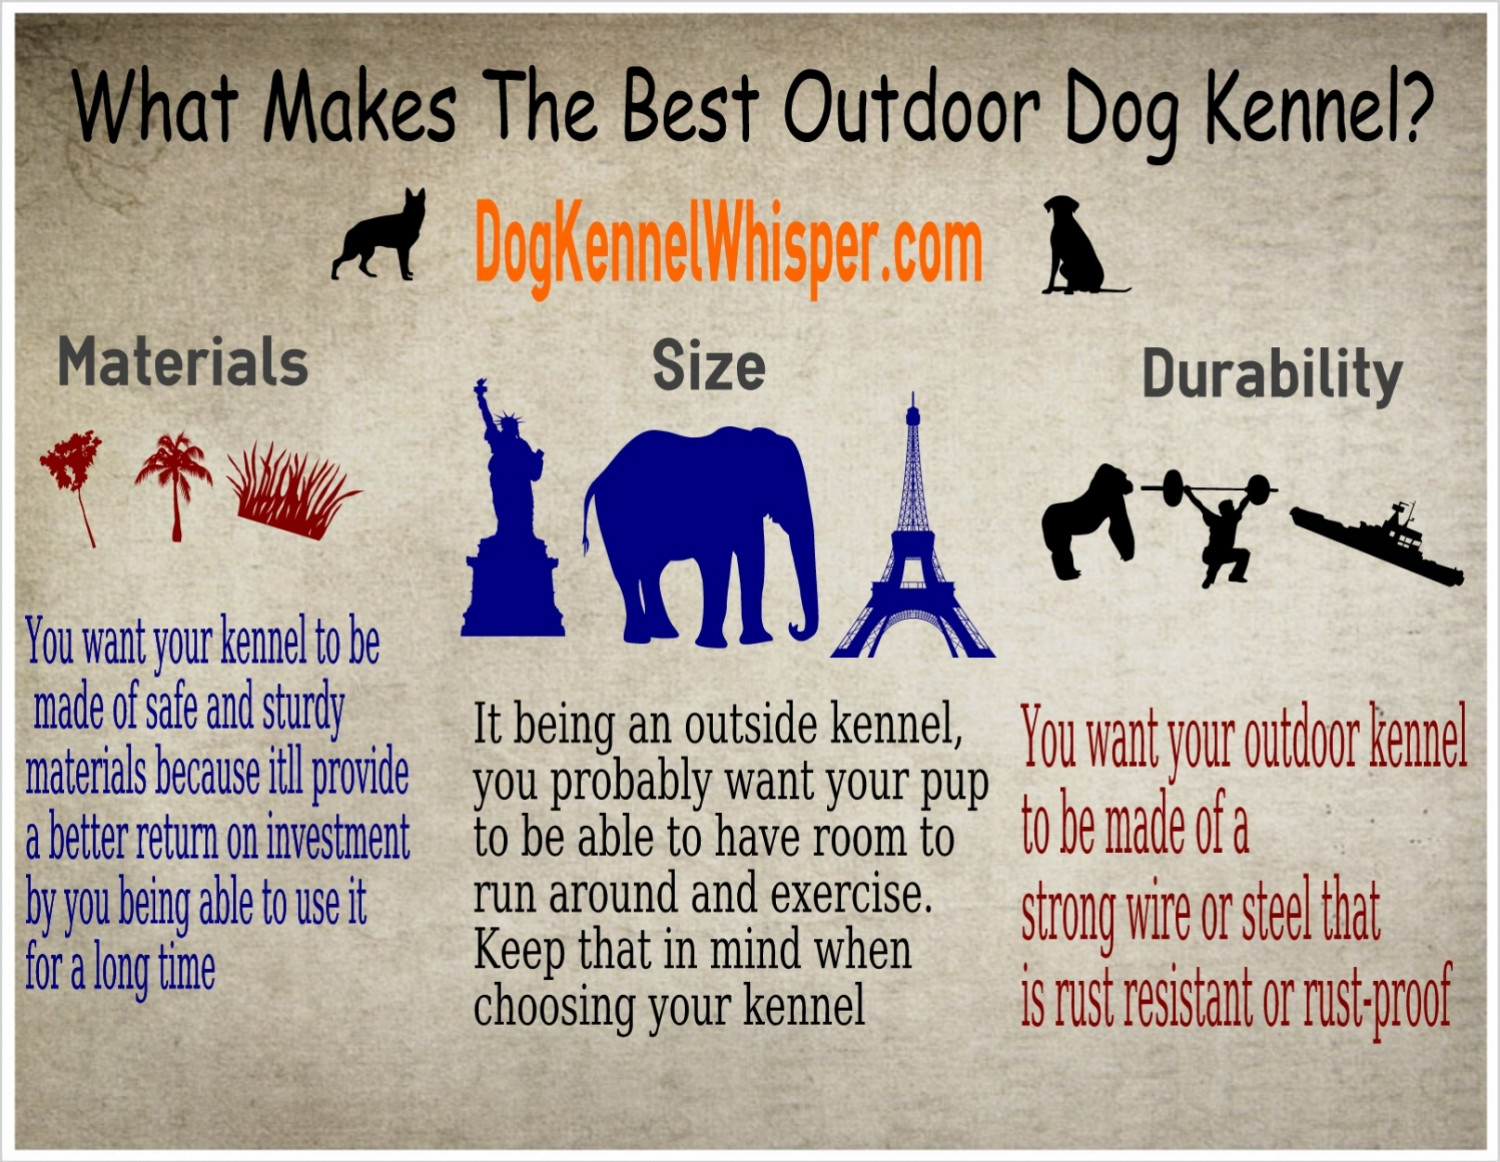 What Makes The Best Outdoor Dog Kennel? Infographic